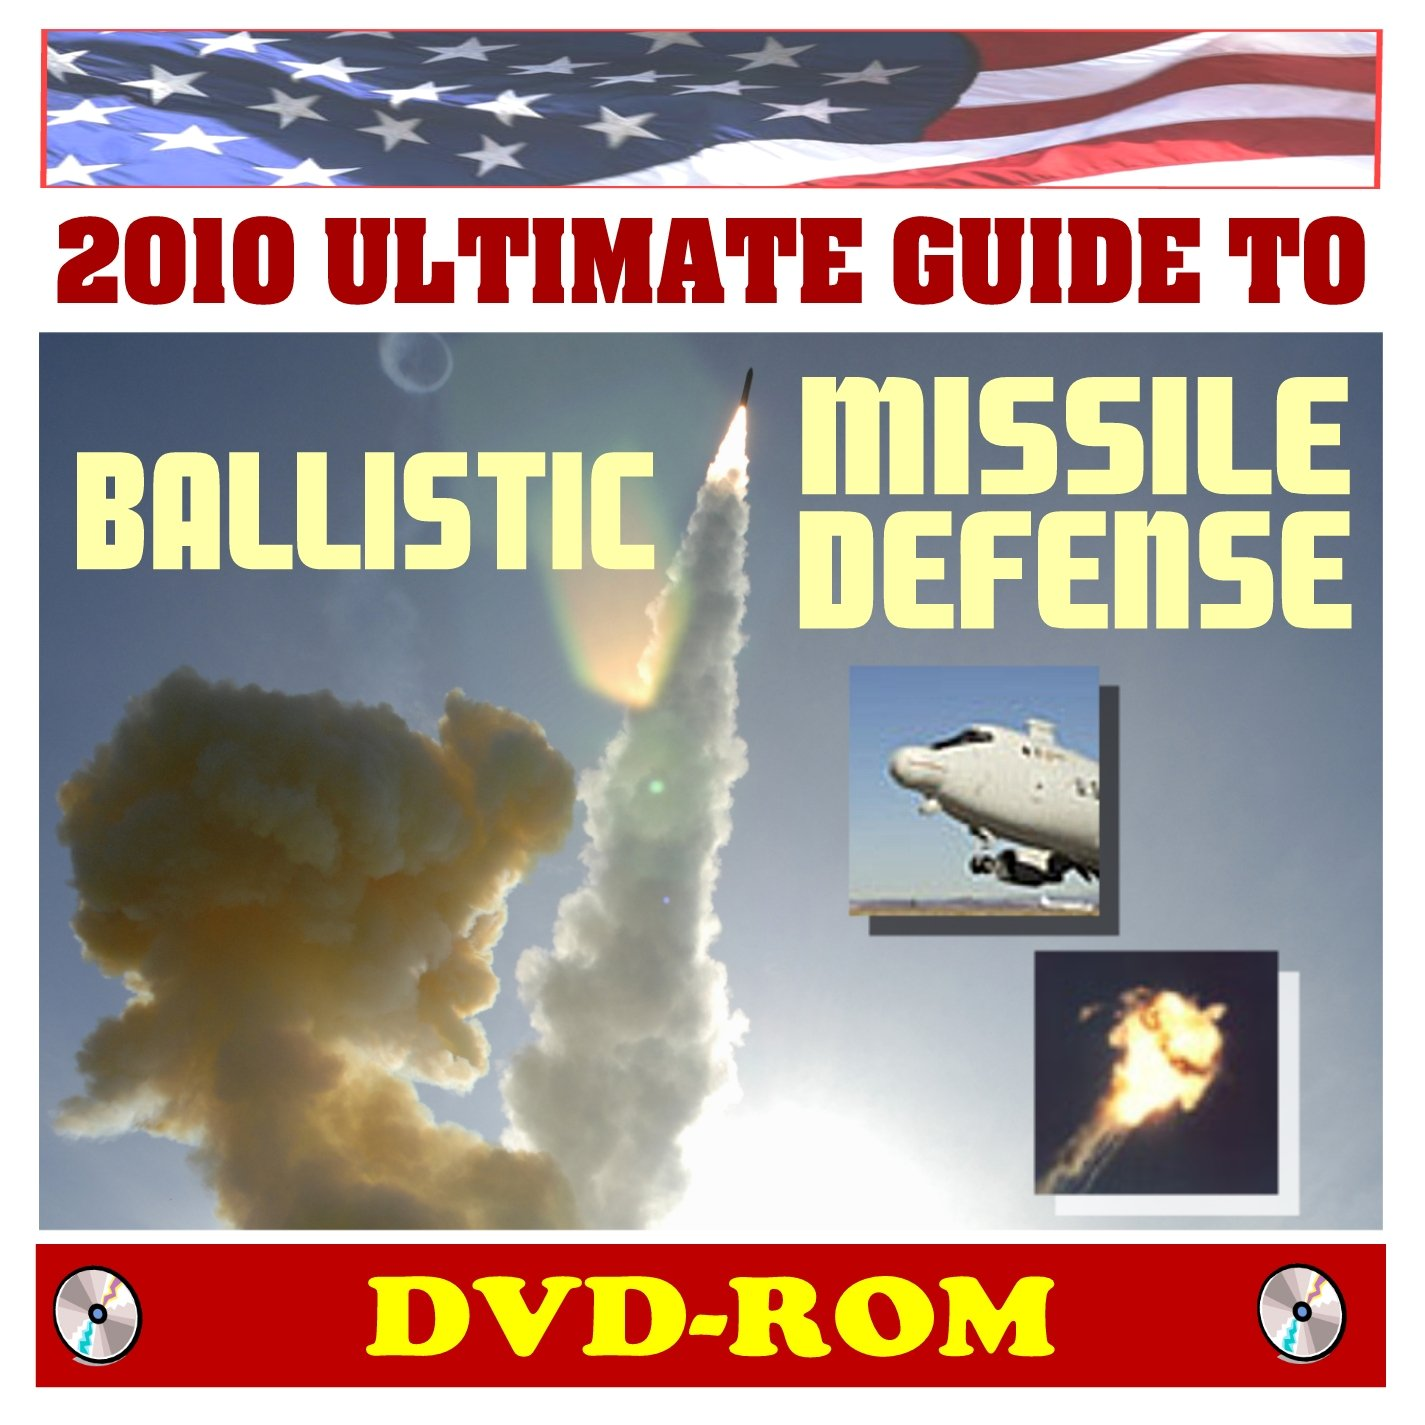 Download 2010 Ultimate Guide to Ballistic Missile Defense and the Missile Defense Agency (MDA) - Complete Coverage of Every Aspect from Threats and Sensors to Interceptors and Testing (DVD-ROM) pdf